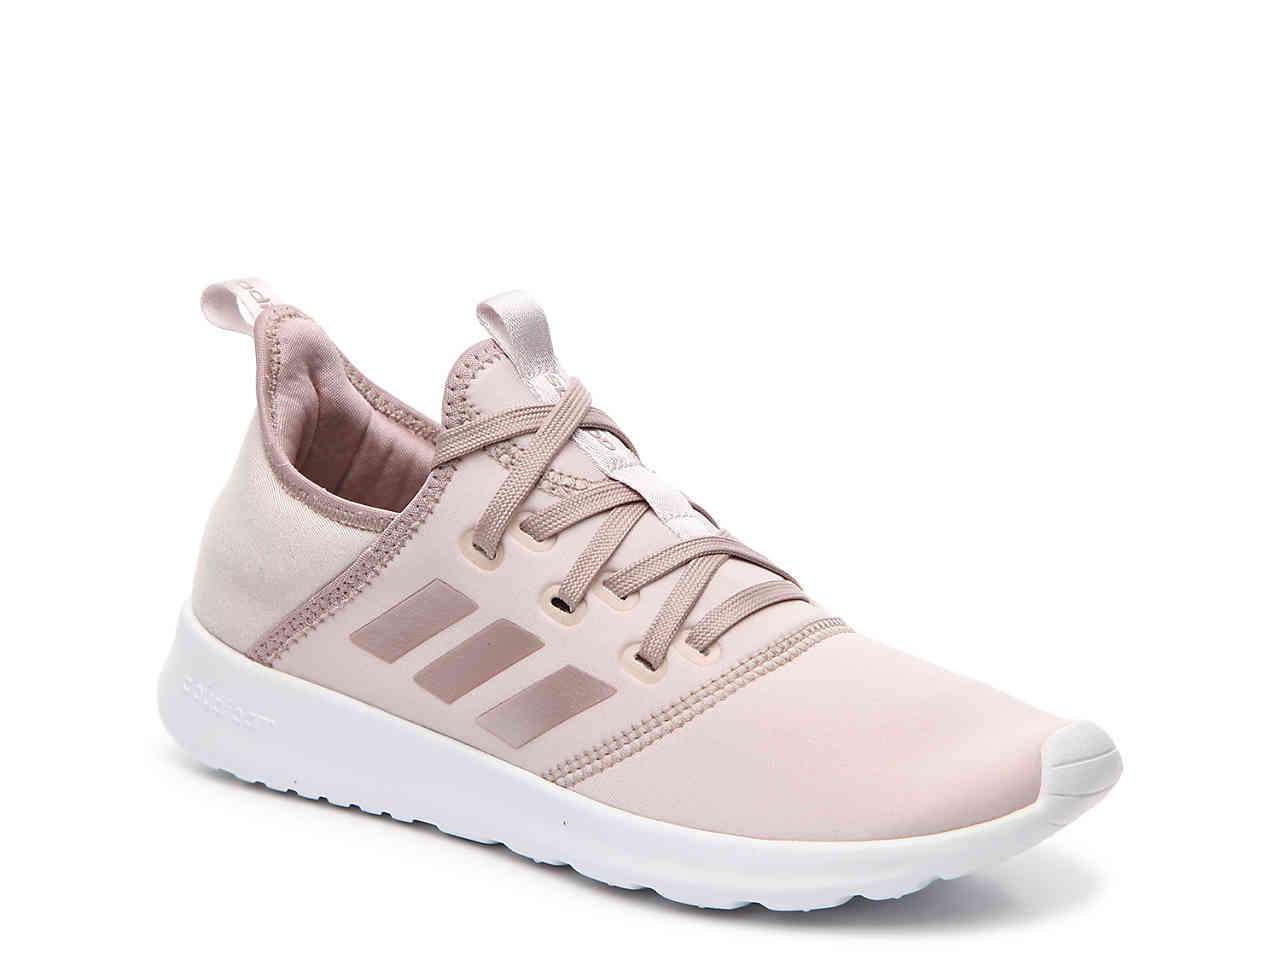 b84bc6e879f Adidas Cloudfoam Pure   Shop Adidas Shoes For Men · Women ·Kids ...